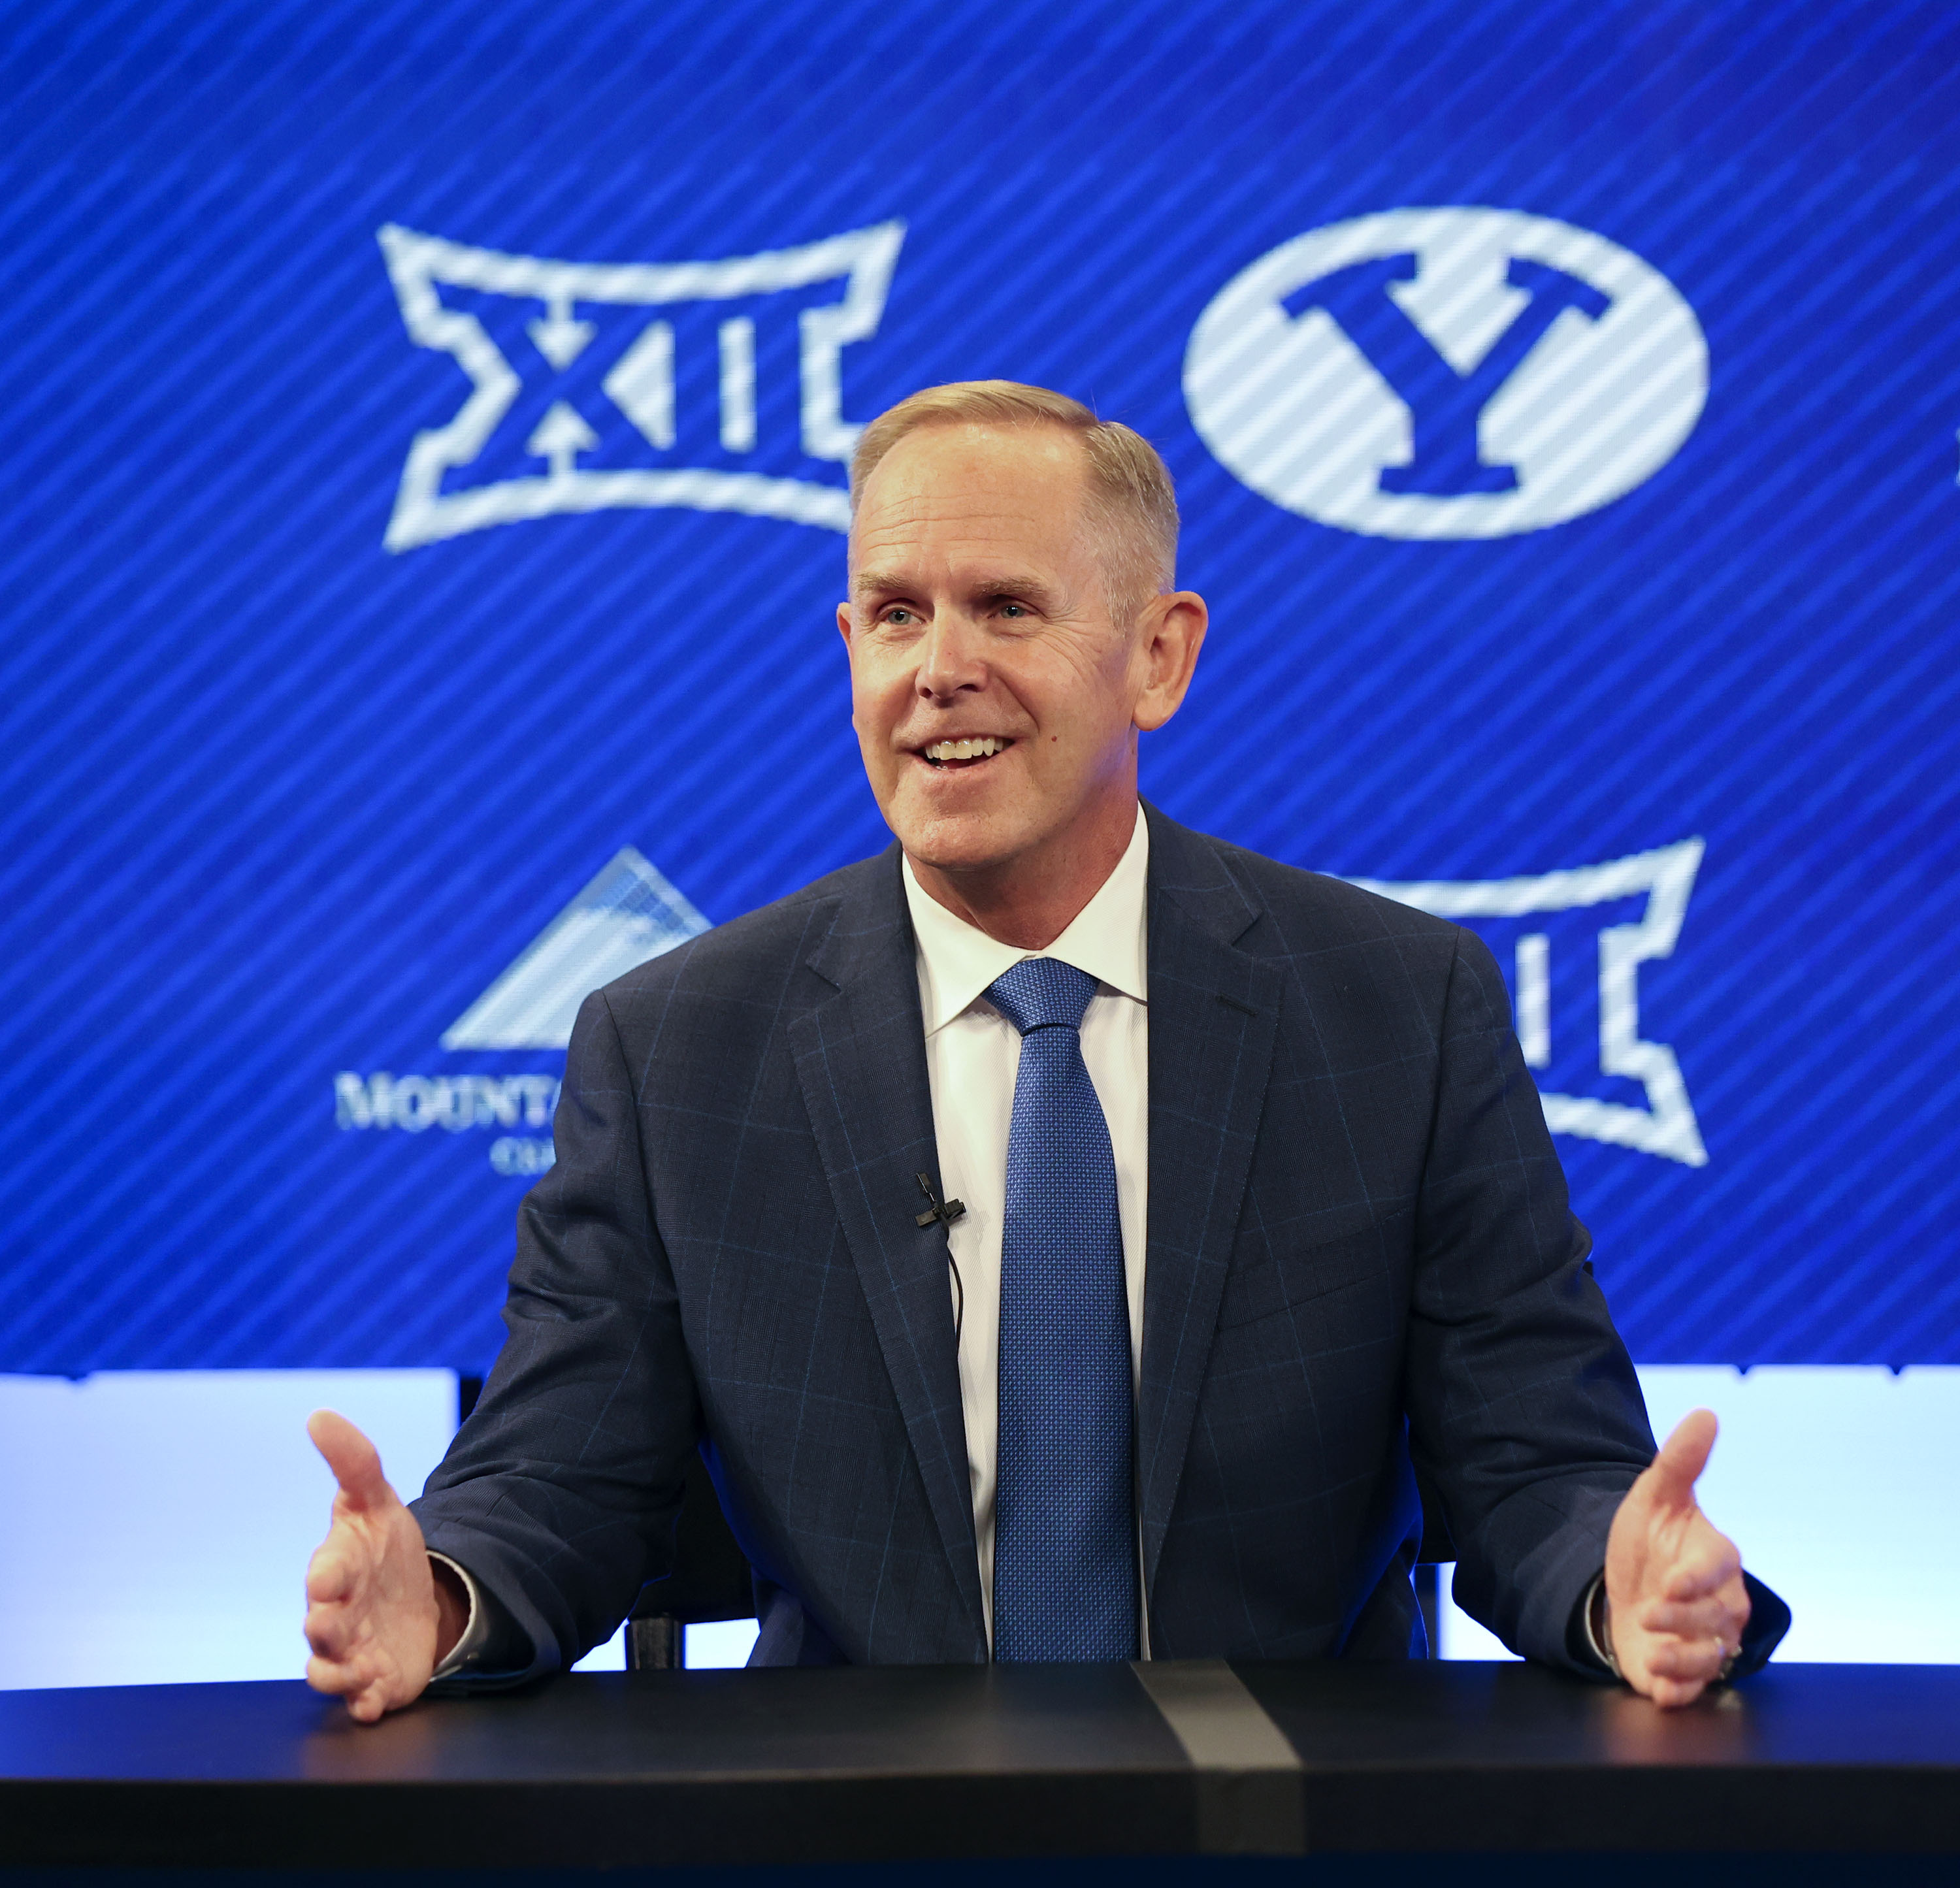 BYU athletic director Tom Holmoe speaks at a press conference announcing that BYU has accepted an invitation to the Big 12 Conference at BYU in Provo on Friday, Sept. 10, 2021. BYU will play all sports provided by the Big 12 except for equestrian, rowing and wrestling. Men's volleyball will continue to play in the Mountain Pacific Sports Federation, as the Big 12 does not offer the sport.